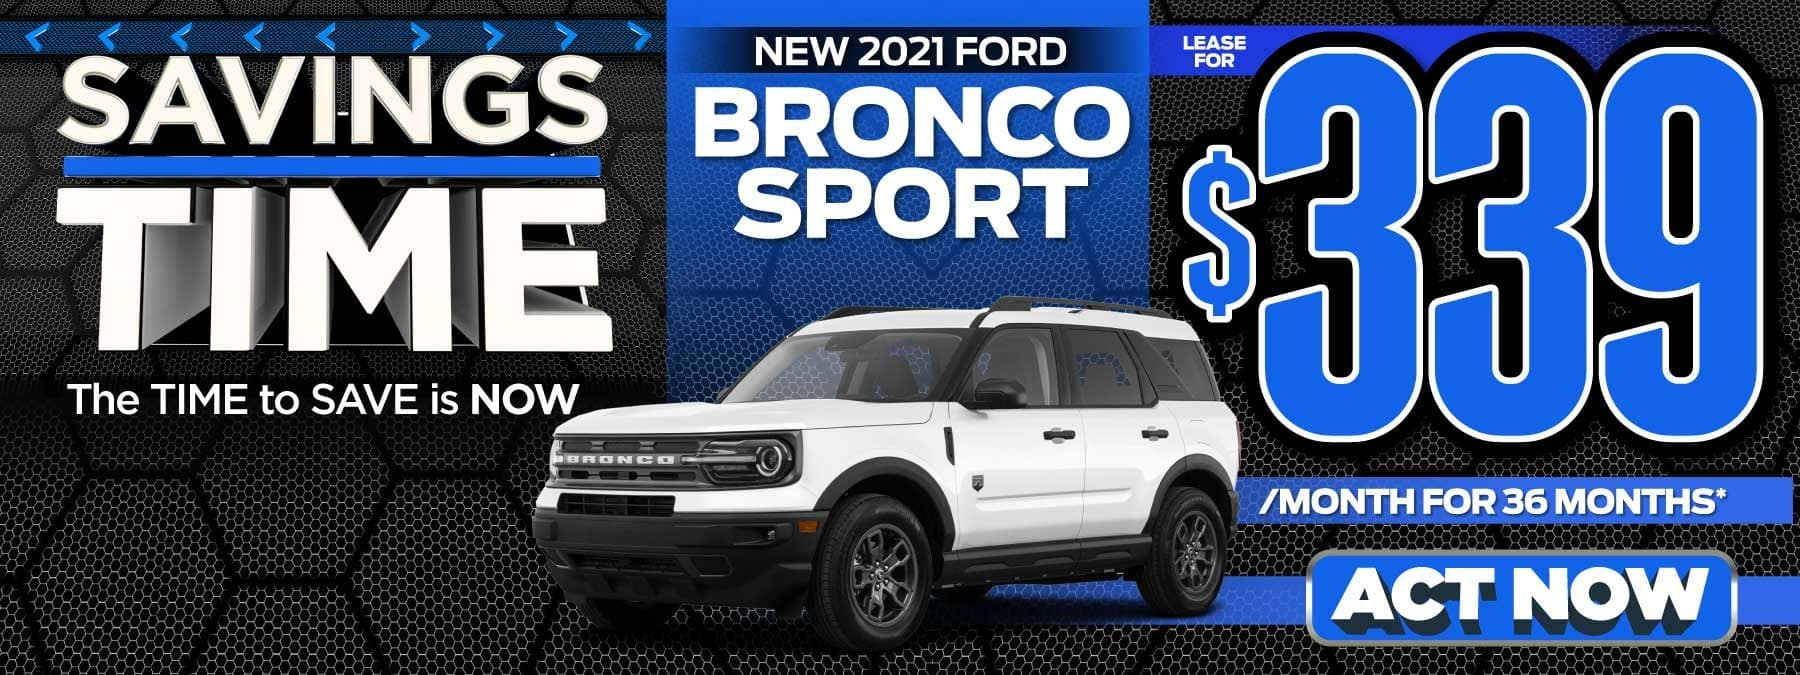 New 2021 Ford Bronco Sport - Lease for $339 a month - Act Now